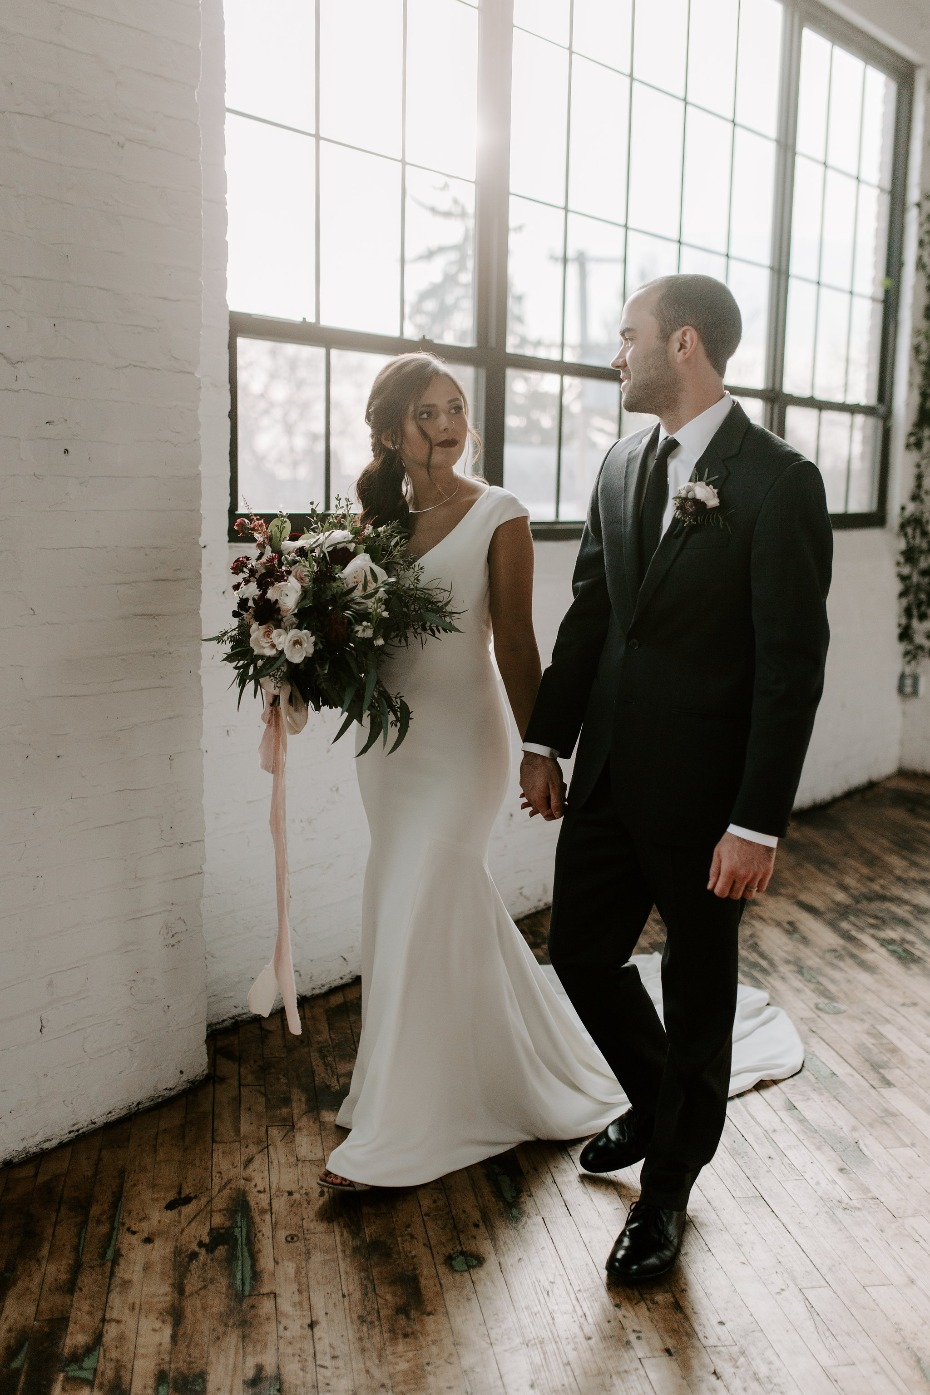 Wedding Chicks - Minimalist Industrial Winter Wedding with Blush and Burgundy Accents